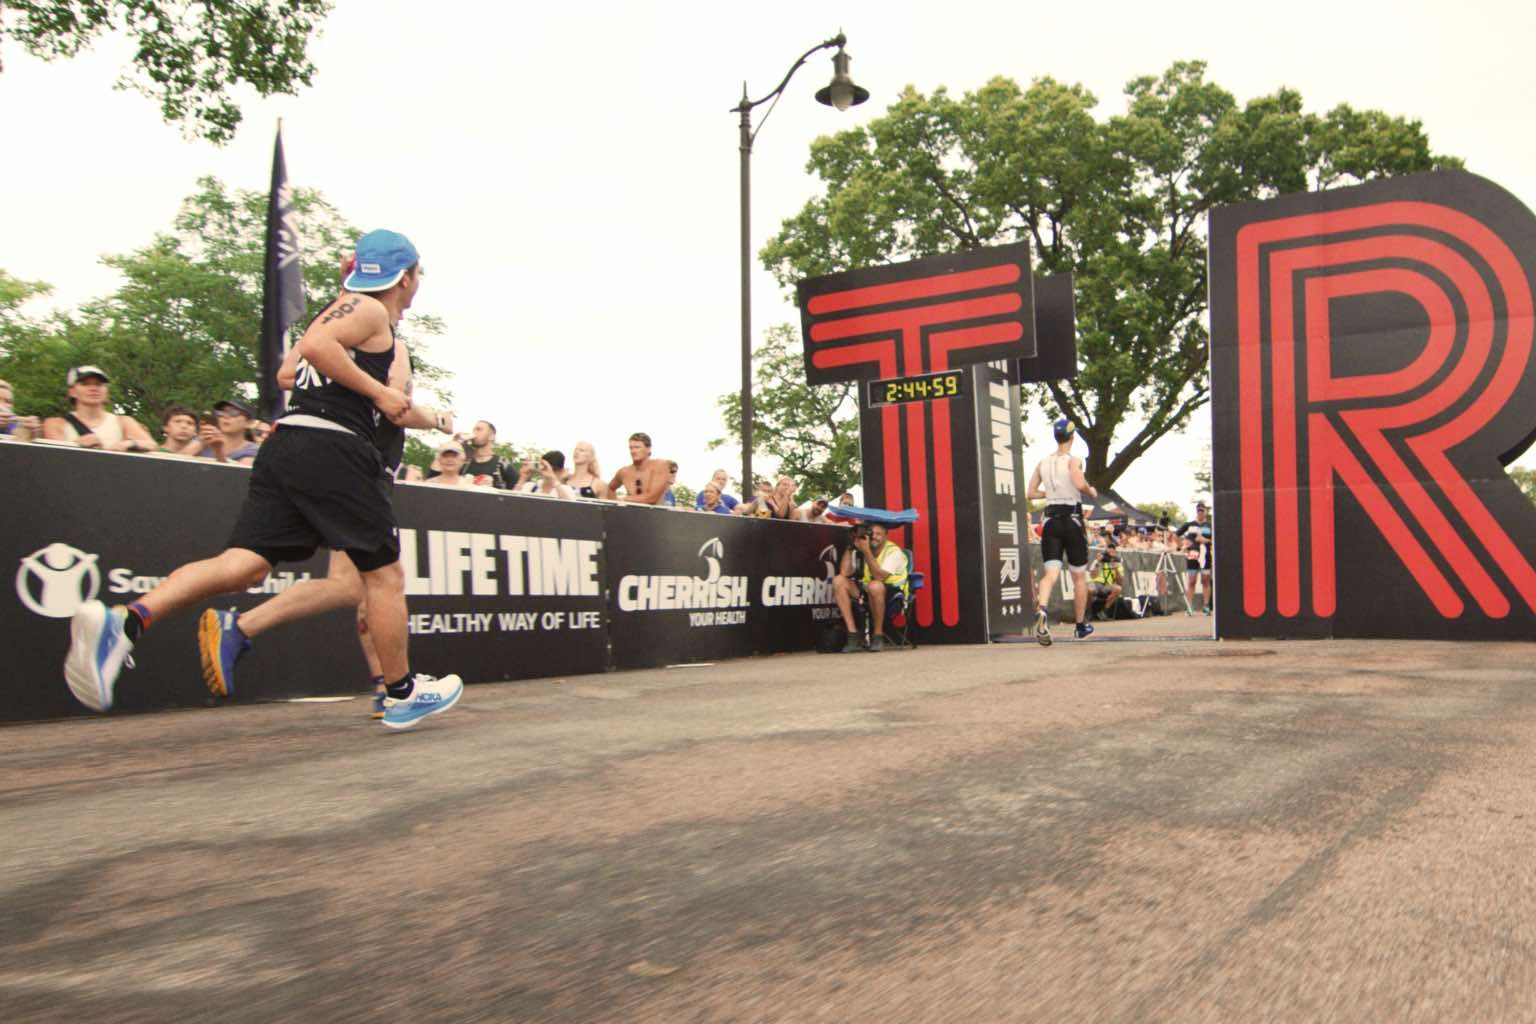 Louie McGee finishing the Life Time Tri